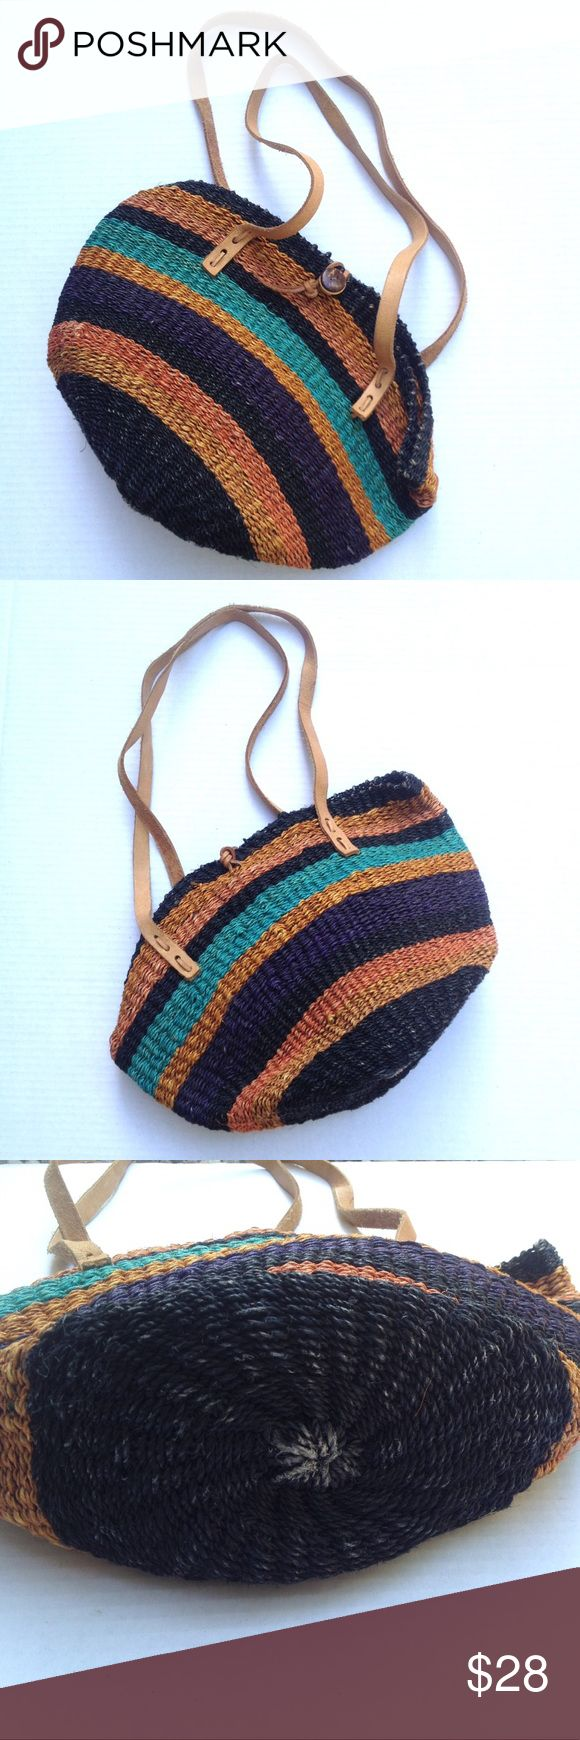 """Ghana colorful woven shoulder market tote shopper Made in Ghana, this colorful market tote is made of naturally dyed woven elephant grass and leather. Genuine raw leather straps have a strap drop of 11.5"""". Bag measures 16"""" long, approx. 6"""" wide (sides expand) and 11"""" tall. Some light wear on bottom from use (see pics), otherwise EUC. Carved button and leather thong closure. Colors of bands include black, purple, teal and two shades of orange. Feel free to ask questions! Ghana Bags Totes"""